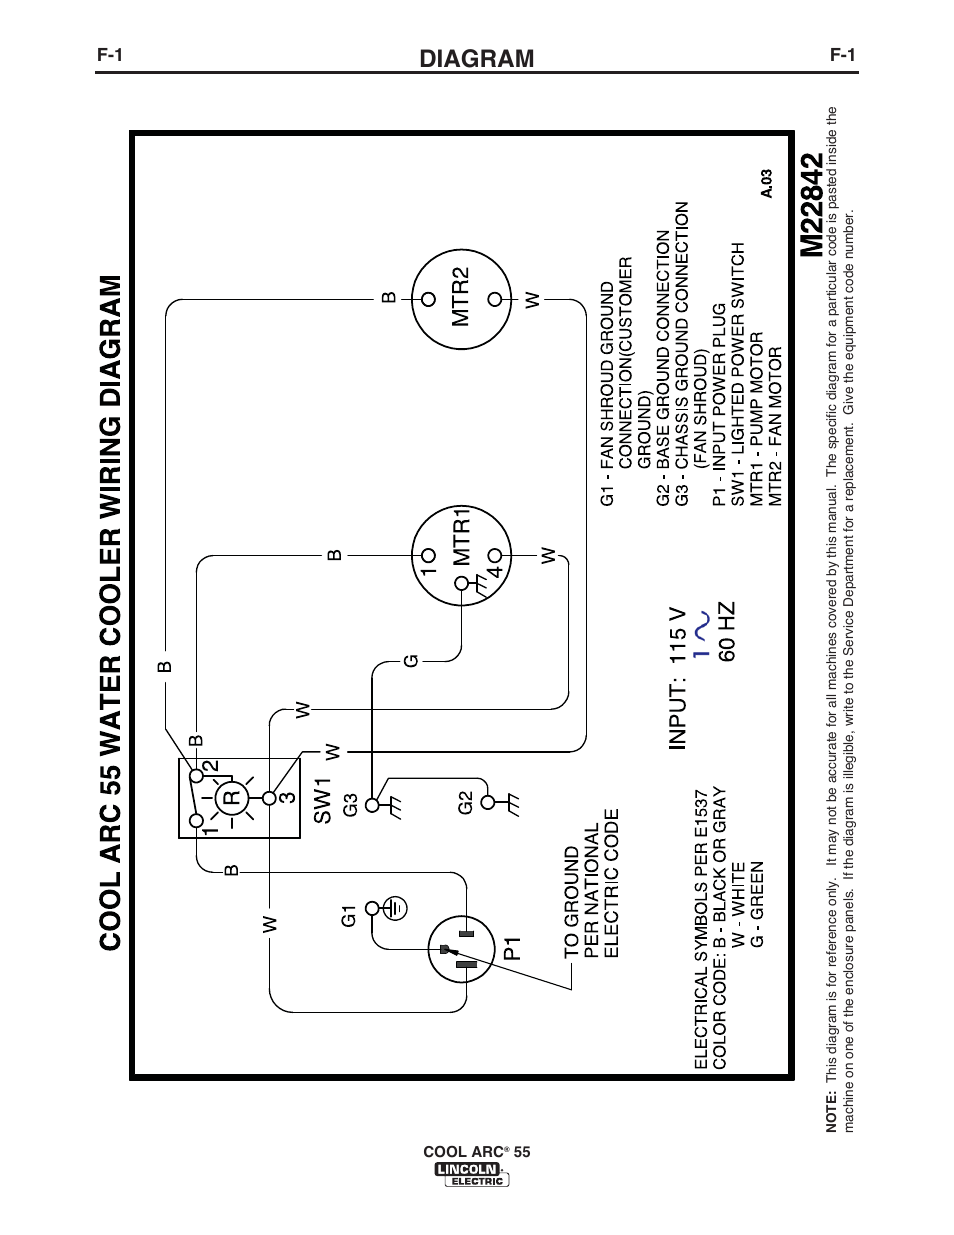 hight resolution of diagram lincoln electric im10117 cool arc 55 water cooler user manual page 20 36